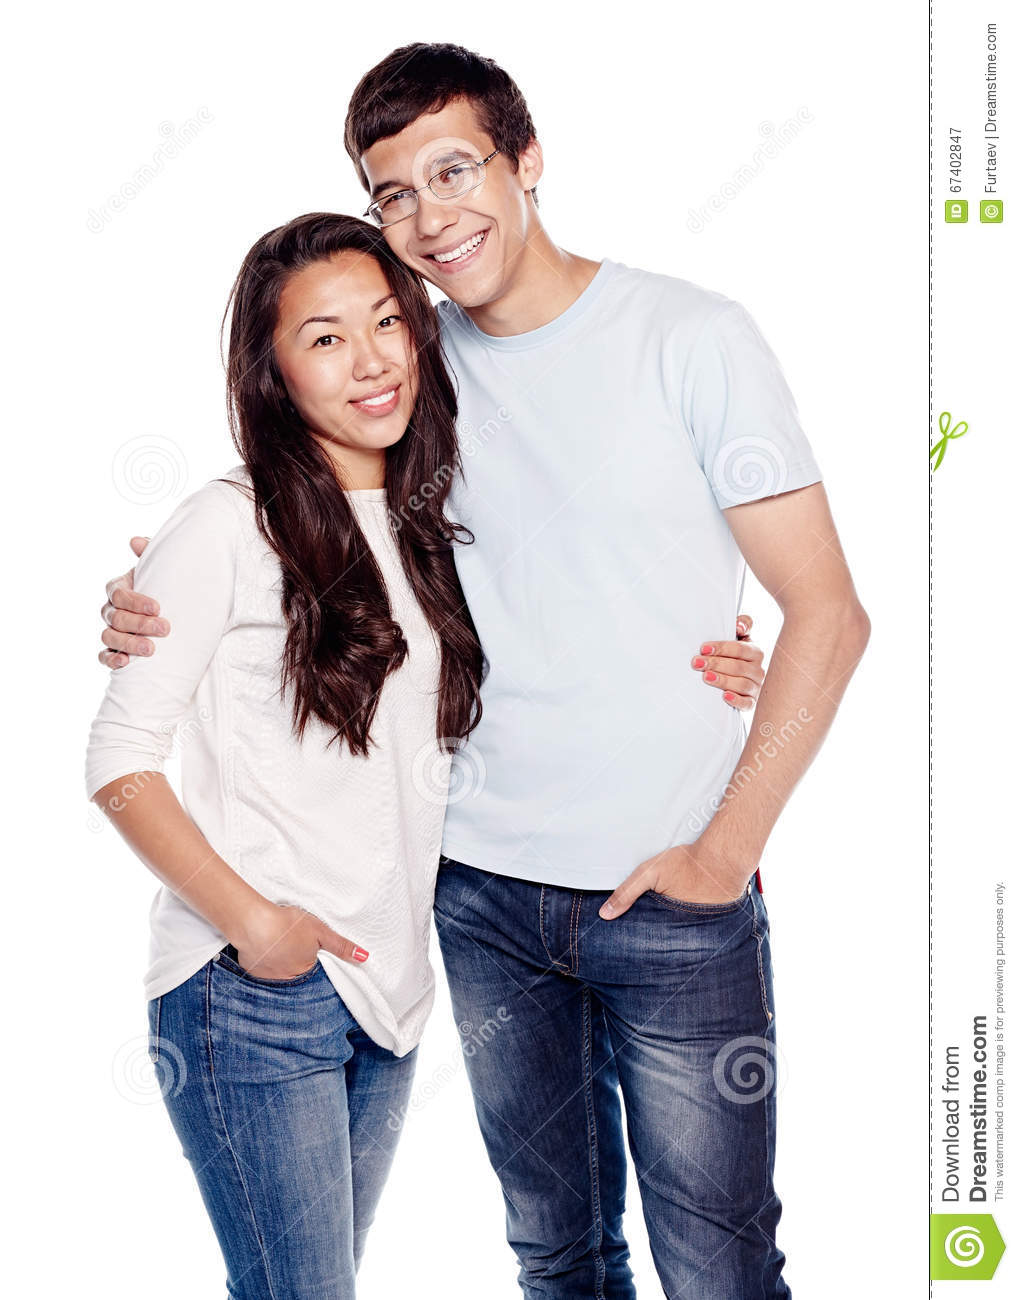 white male interracial dating